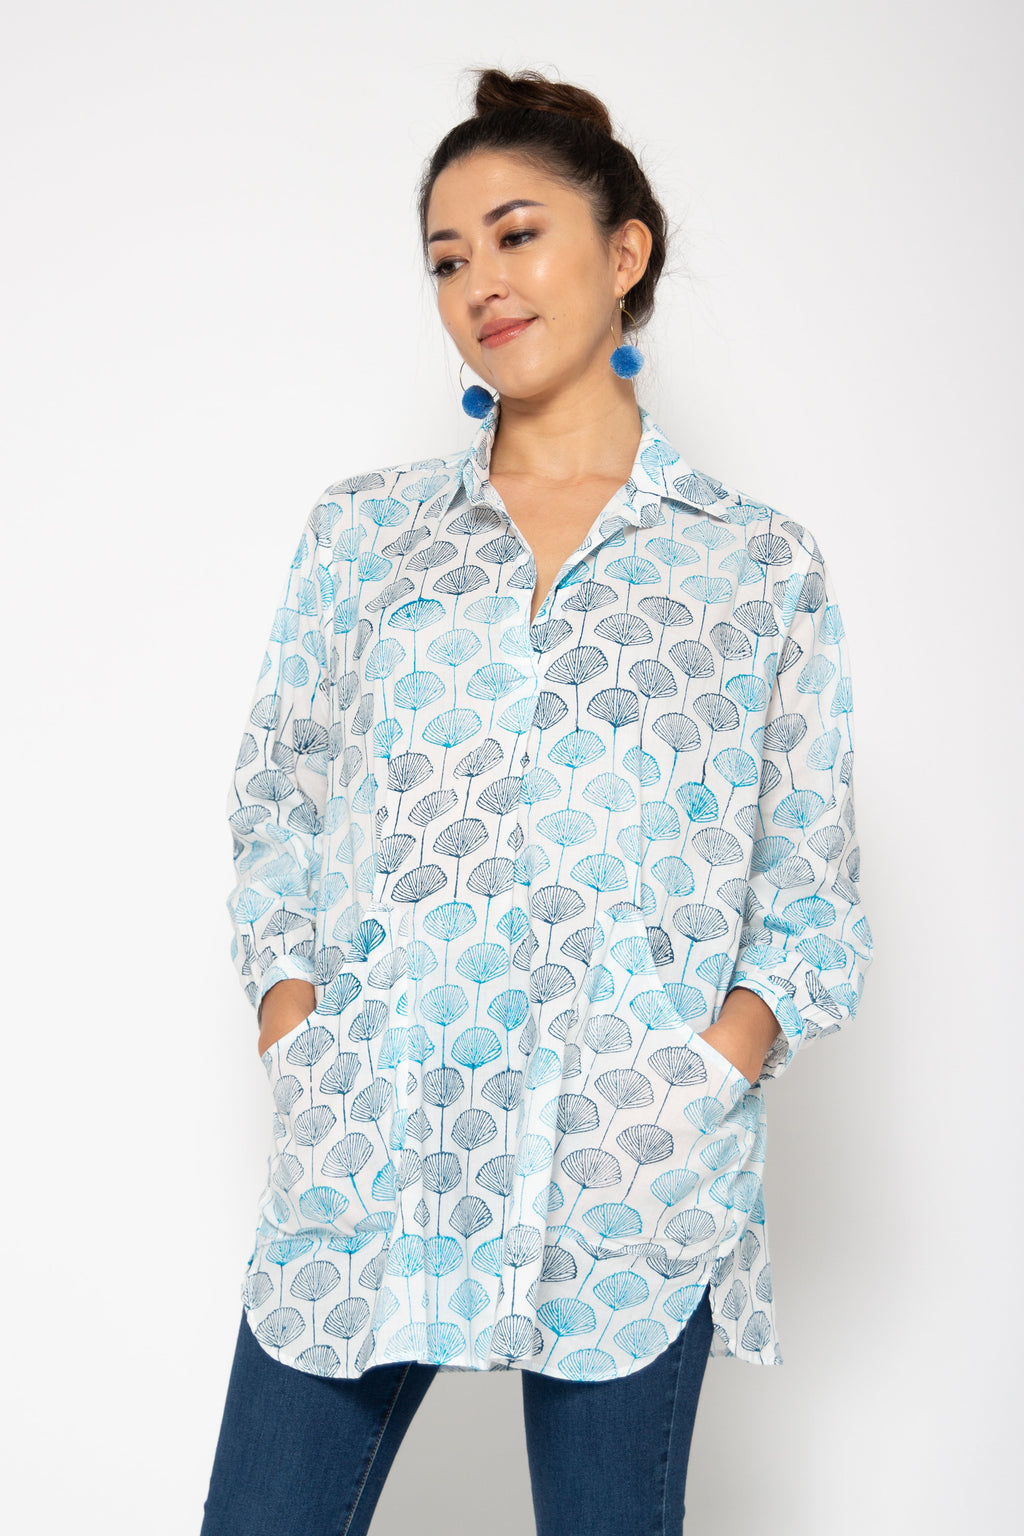 Baliza women´s Bambu shirt in blue Japanese fans block print